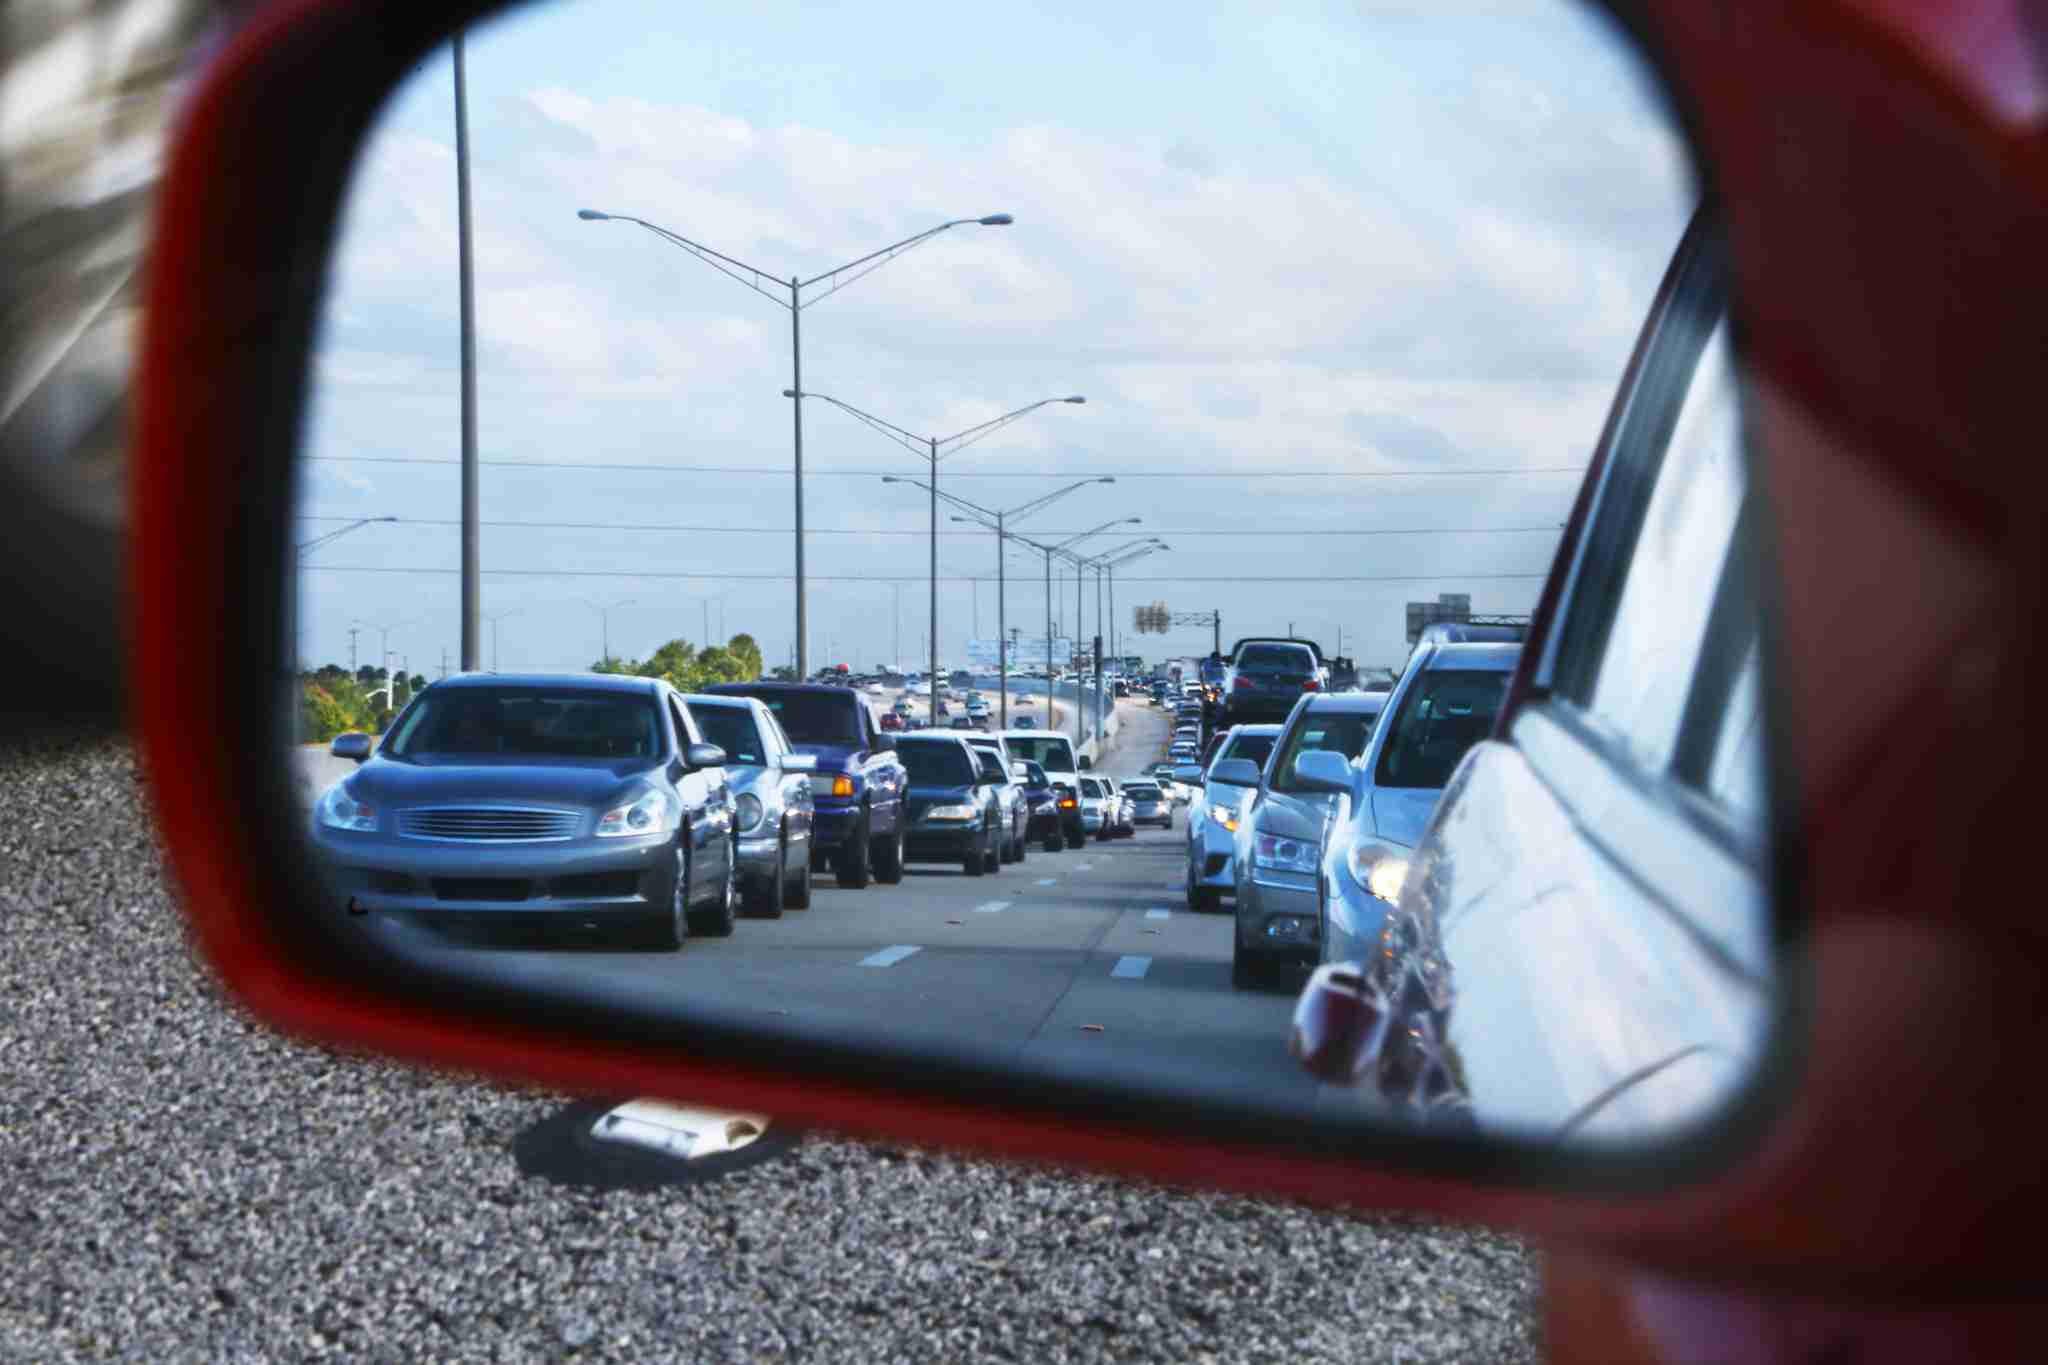 Not an uncommon scene on I-95 (Photo by Manakin / Getty Images)